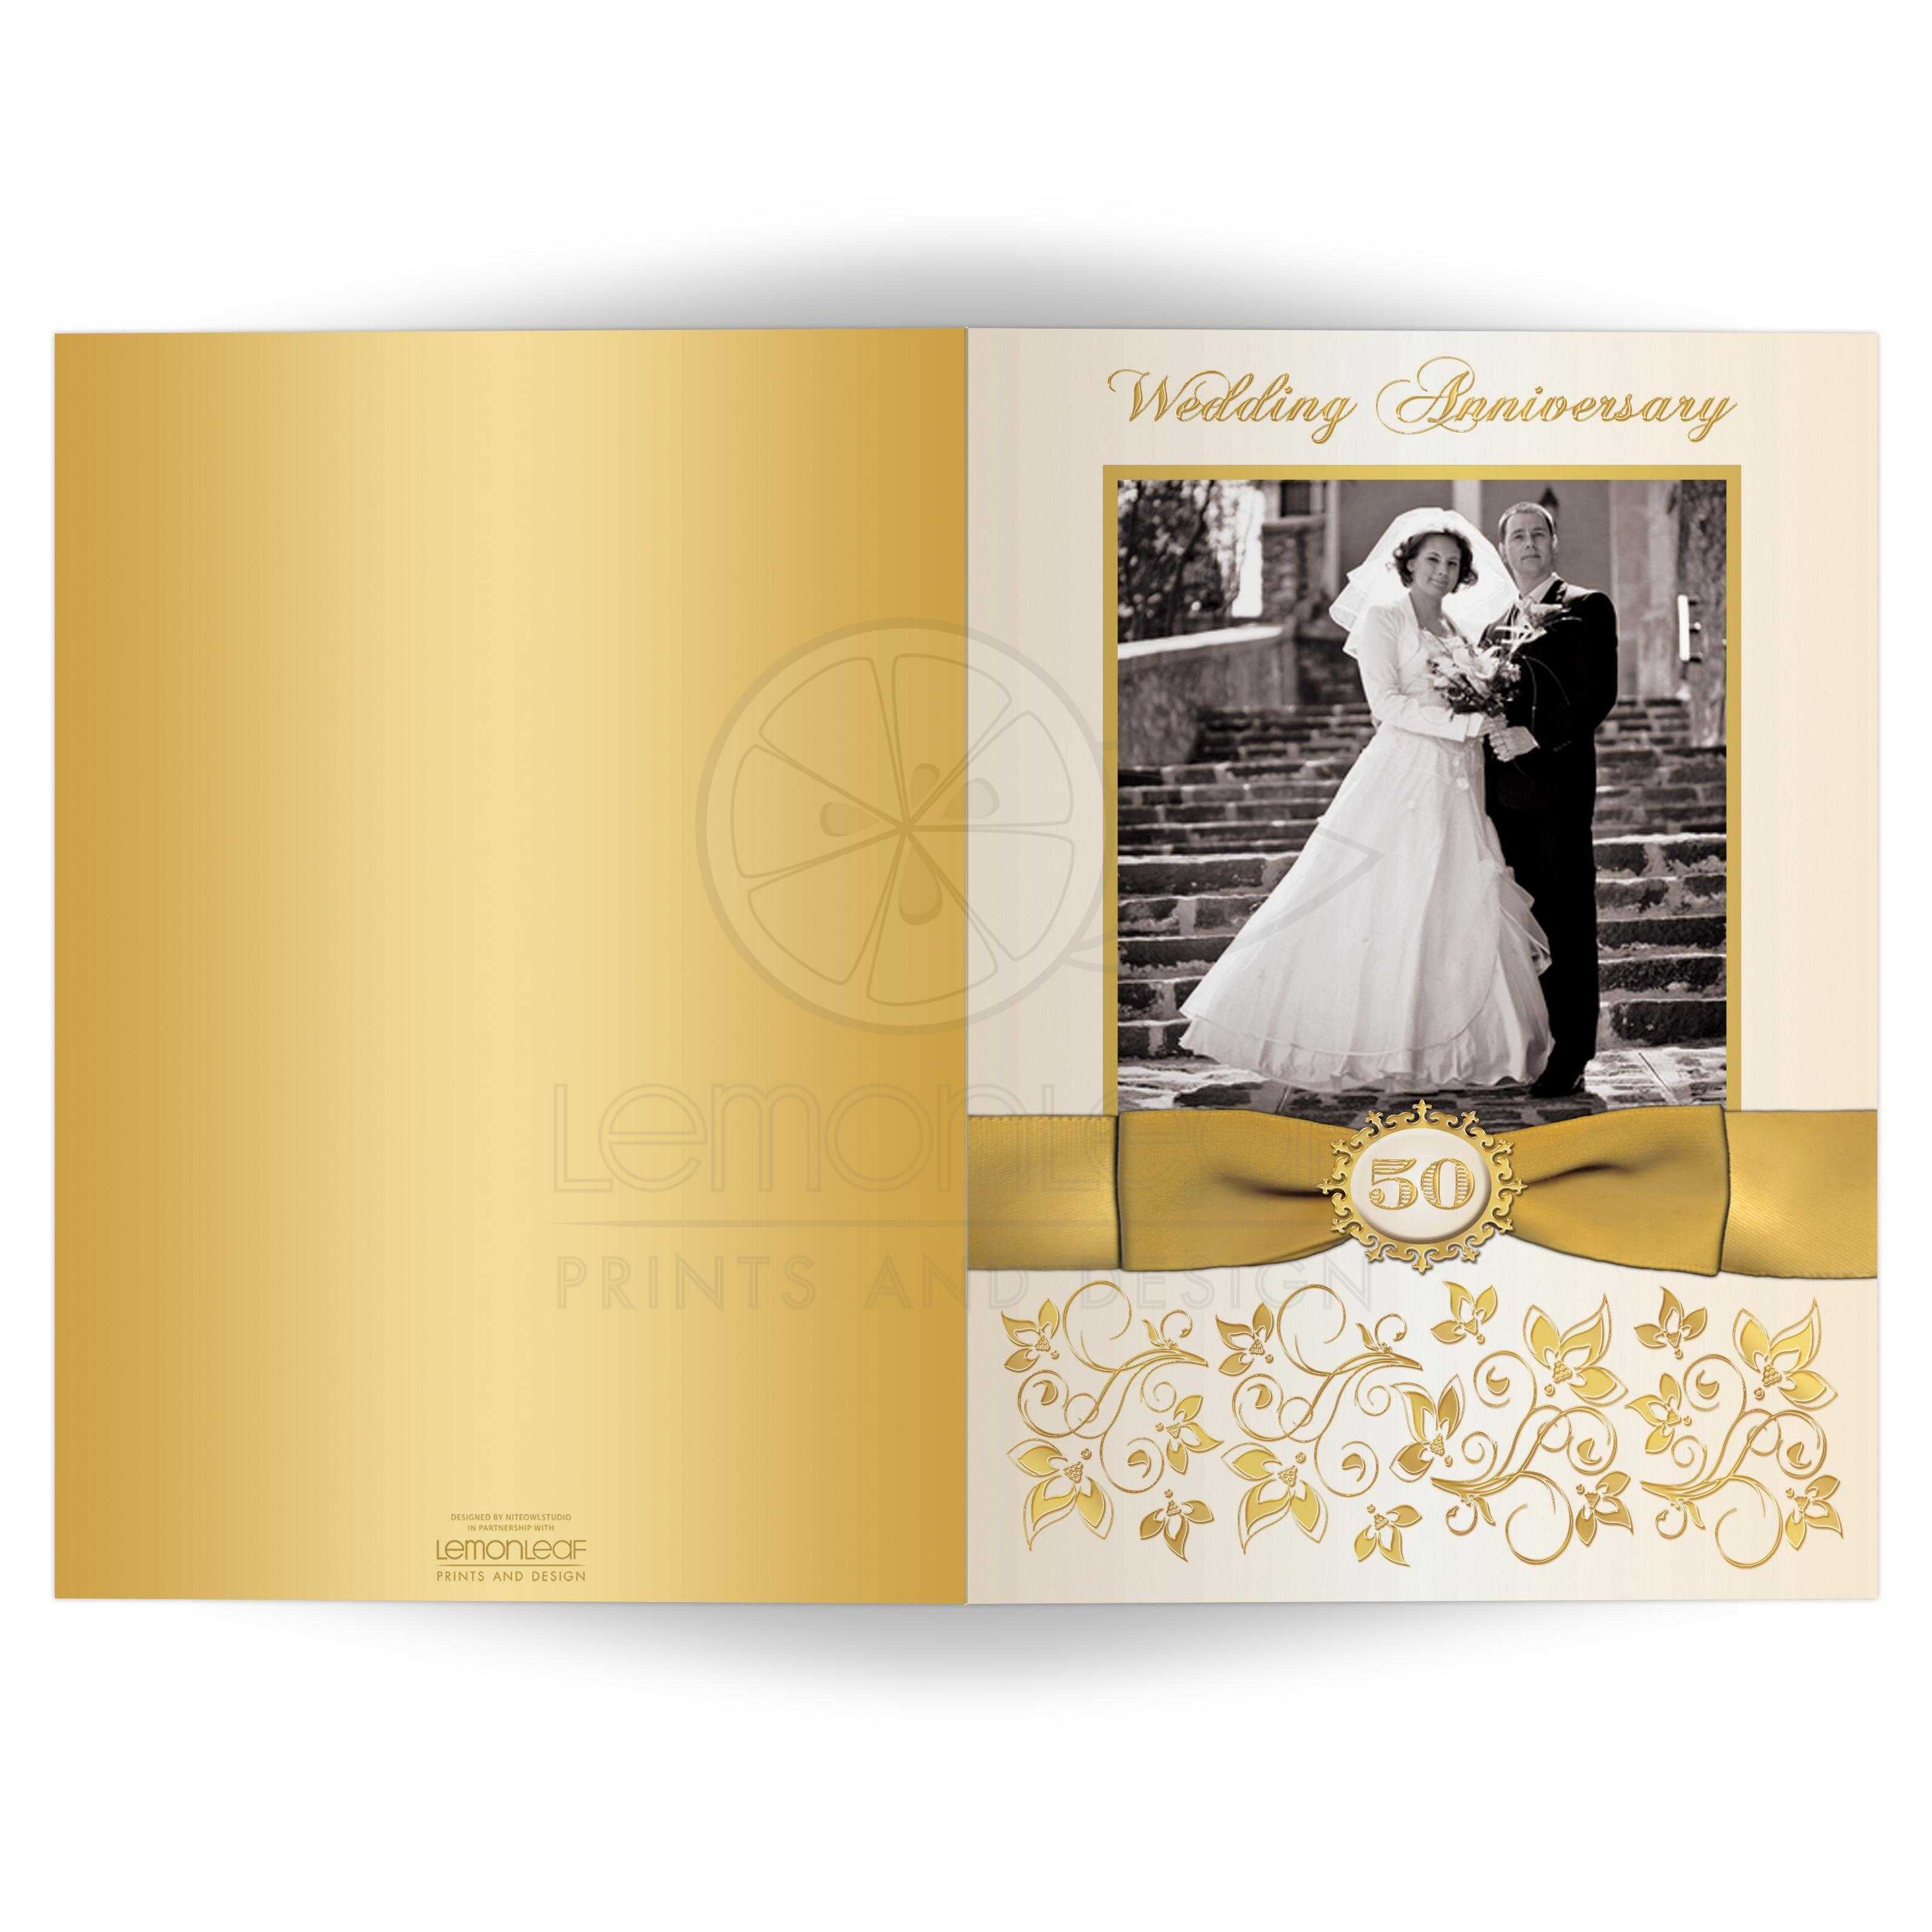 50th wedding anniversary invitation double photo ivory gold 50th wedding anniversary invitation card in ivory and gold floral with ribbon and photos stopboris Images